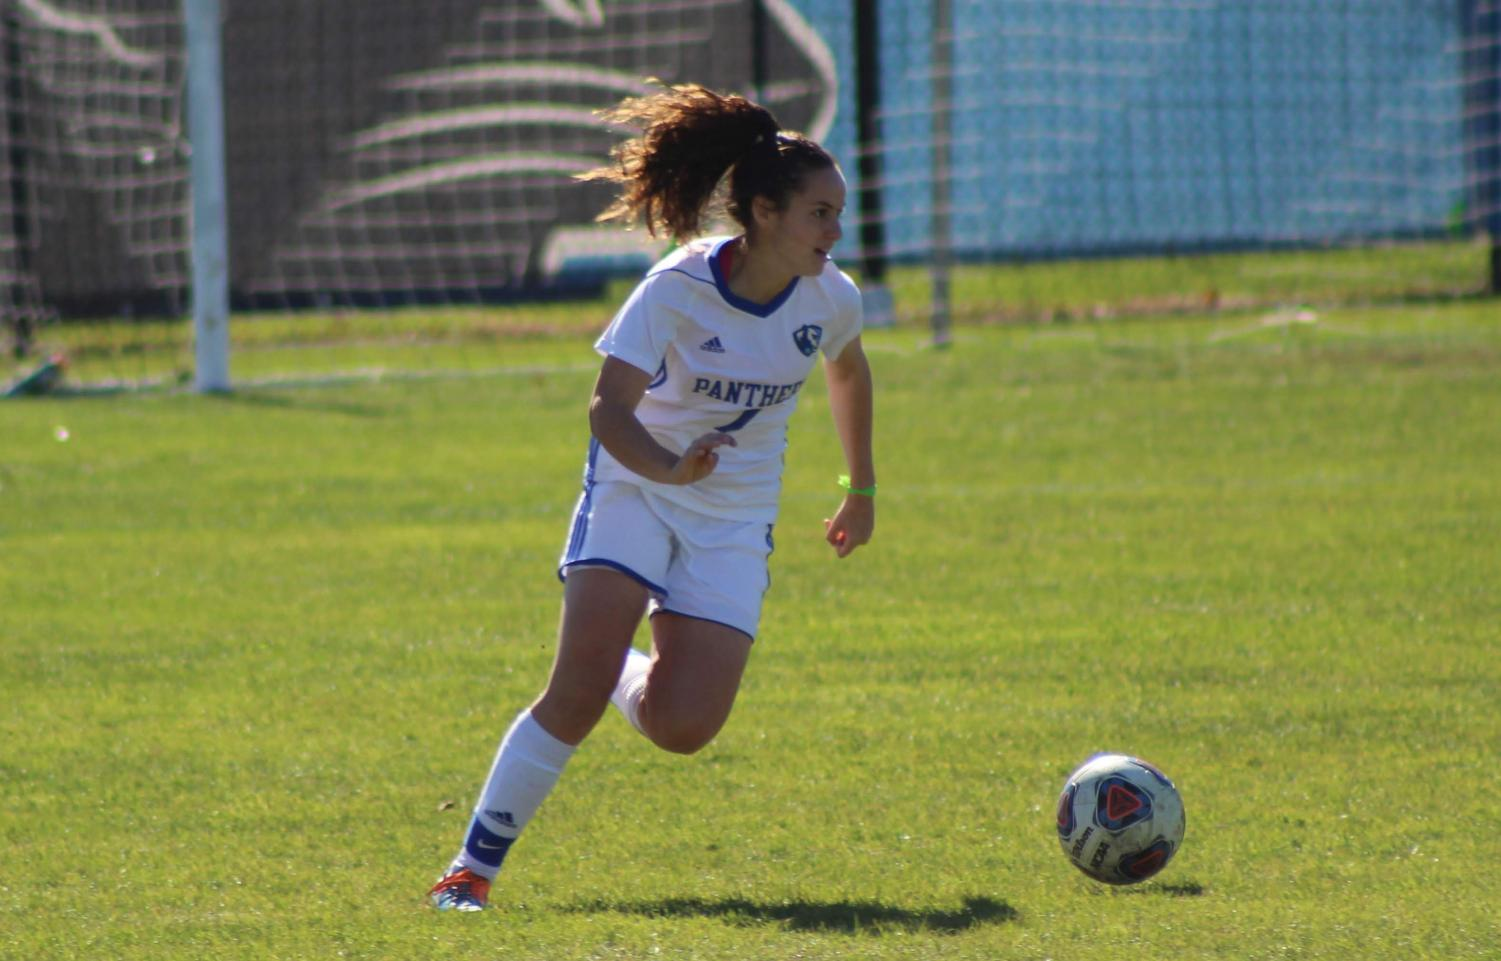 Eastern sophomore Itxaso Aguero controls the ball against Southeast Missouri on Oct. 28. The Panthers won to advance to the semifinals of the OVC Tournament, which they lost 1-0 on Nov. 2 against Murray State.